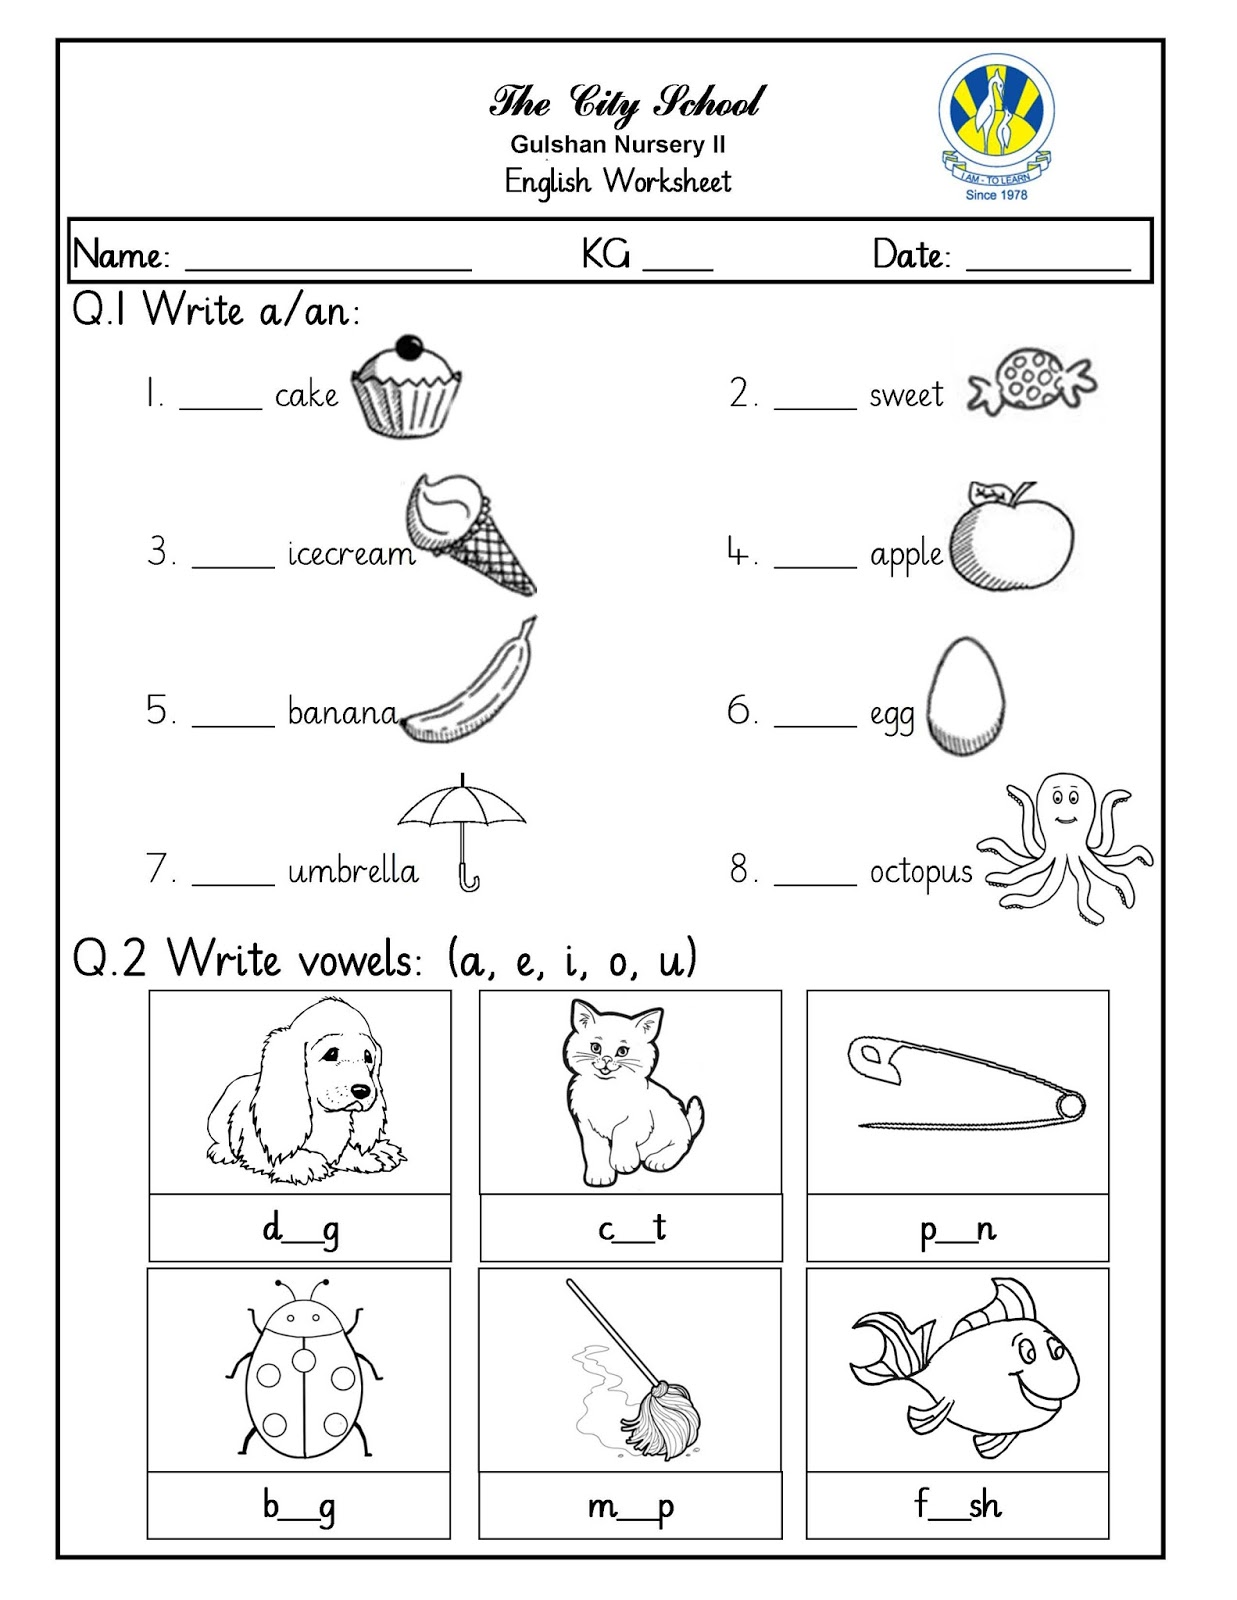 Sr Gulshan The City Nursery Ii English Kuwa And Math Worksheets